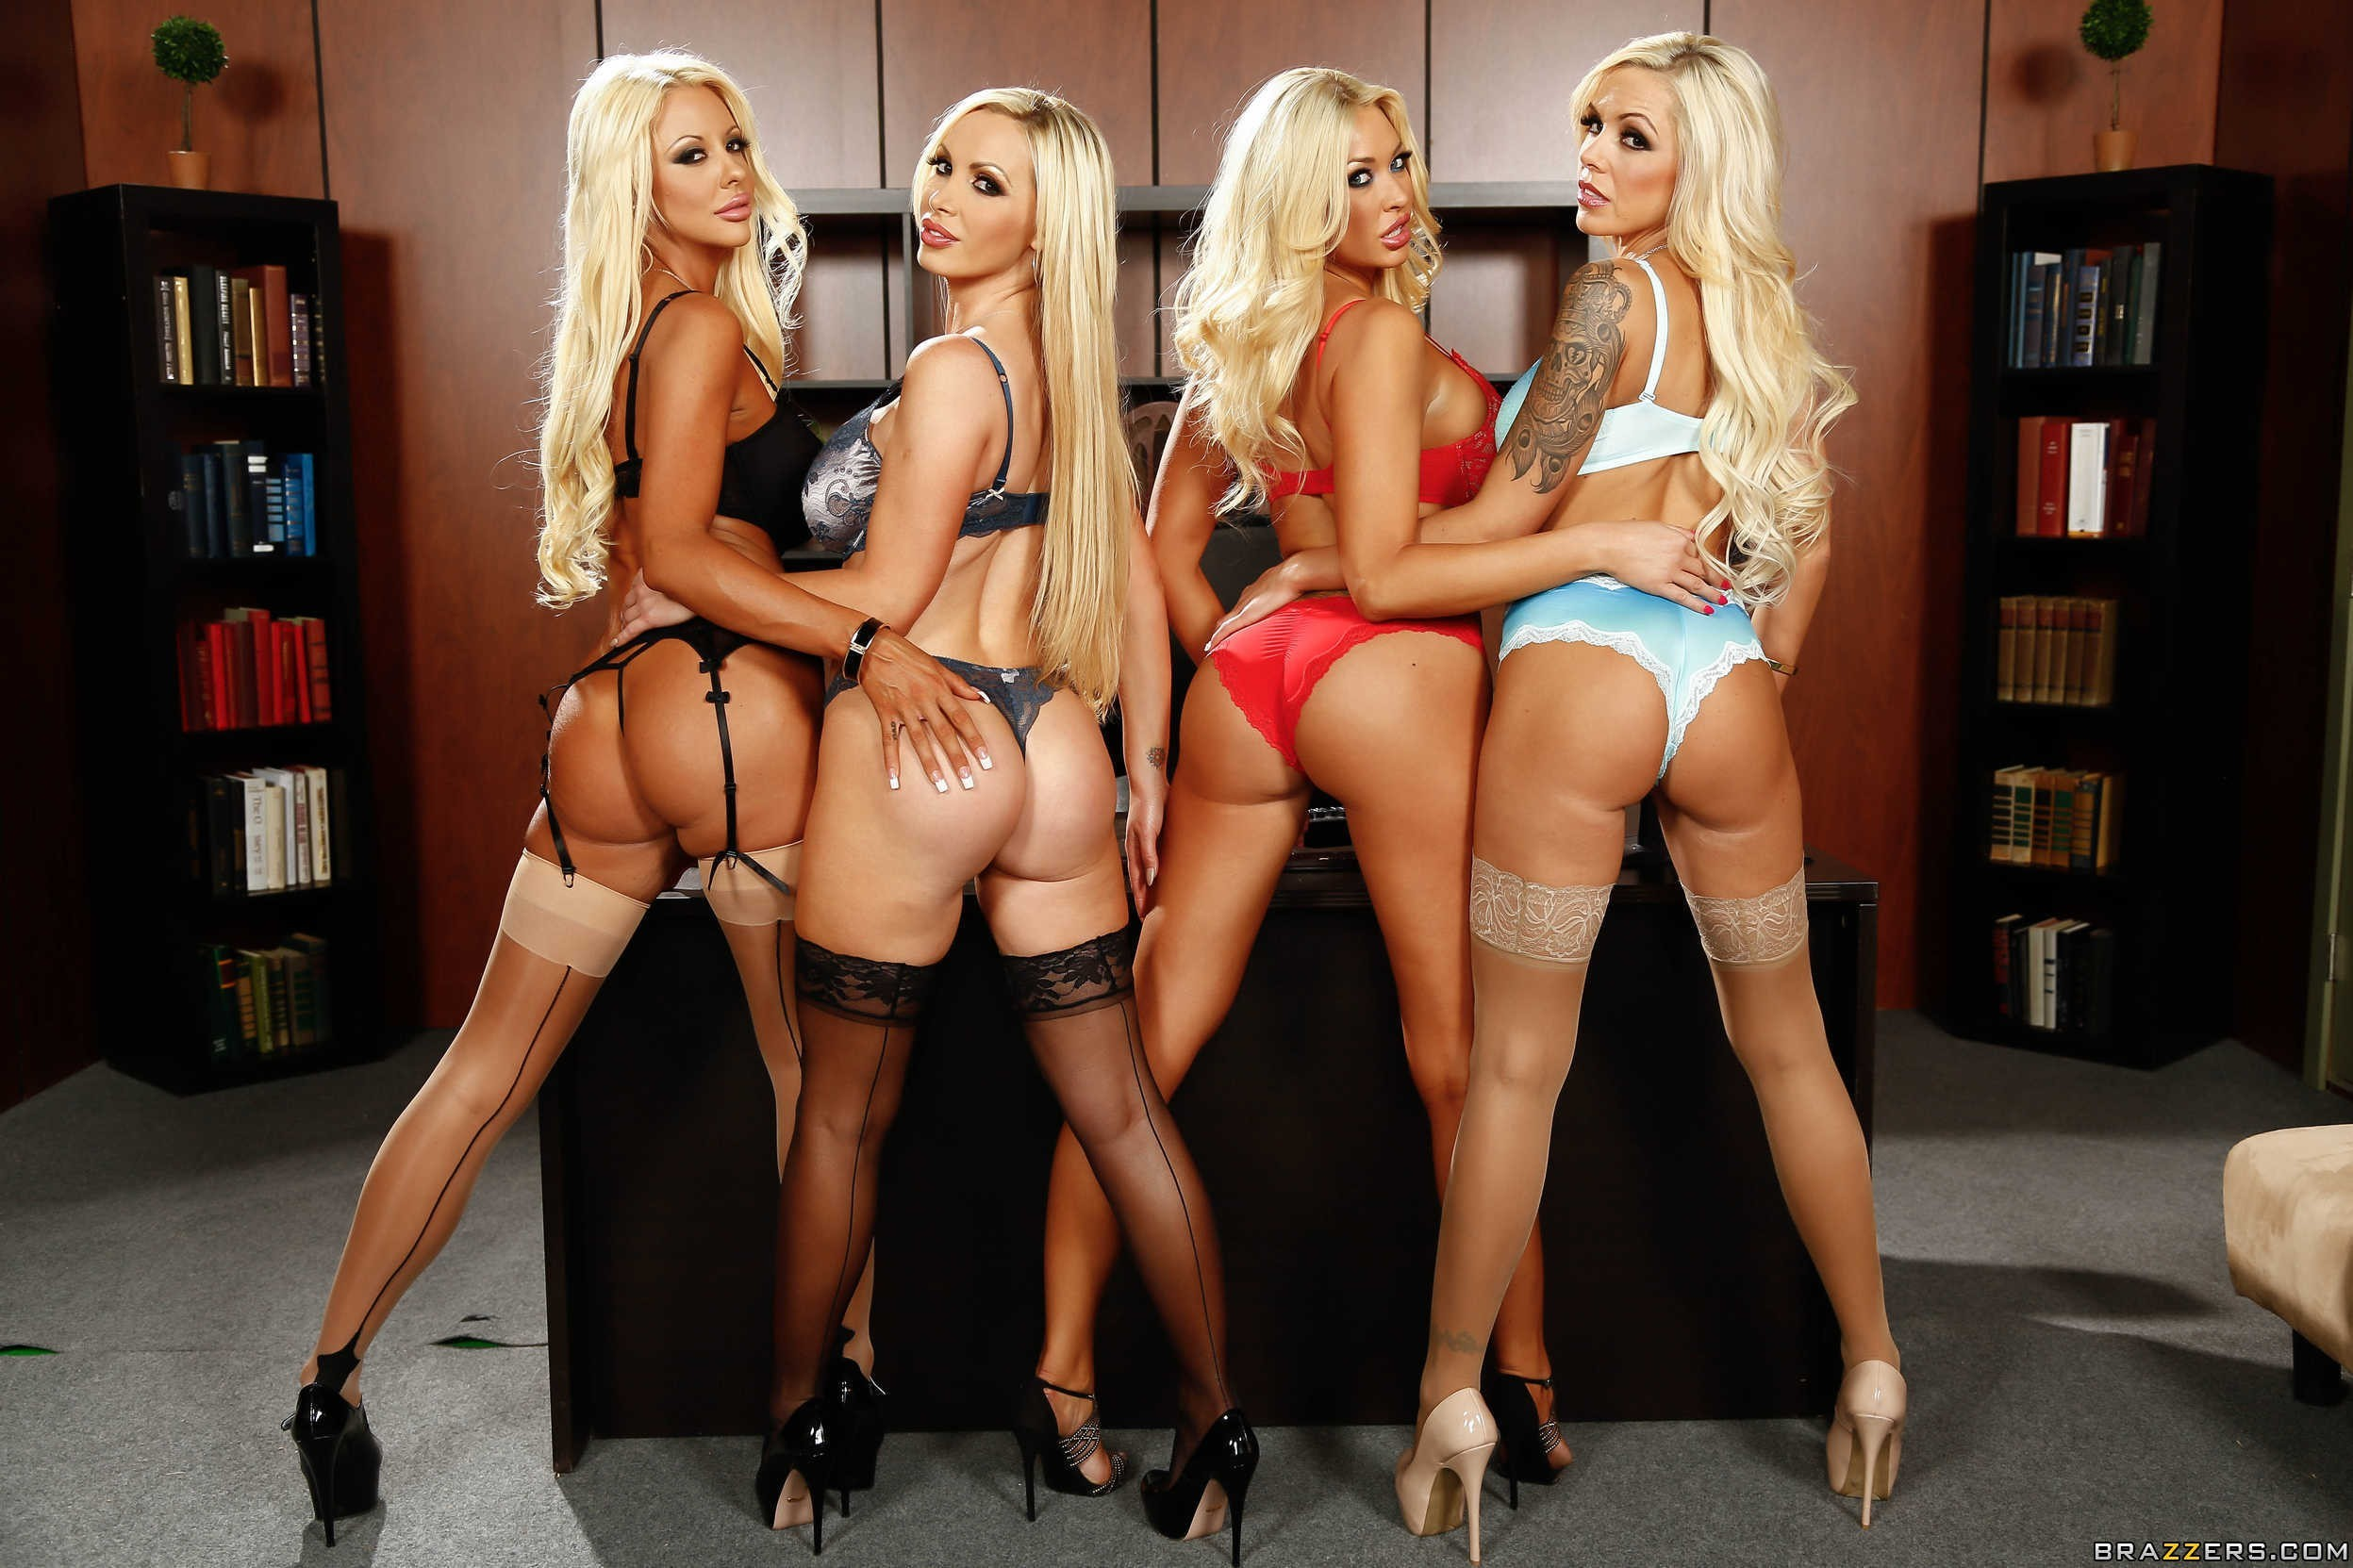 Nikki Benz, Summer Brielle, Courtney Taylor and Nina Elle